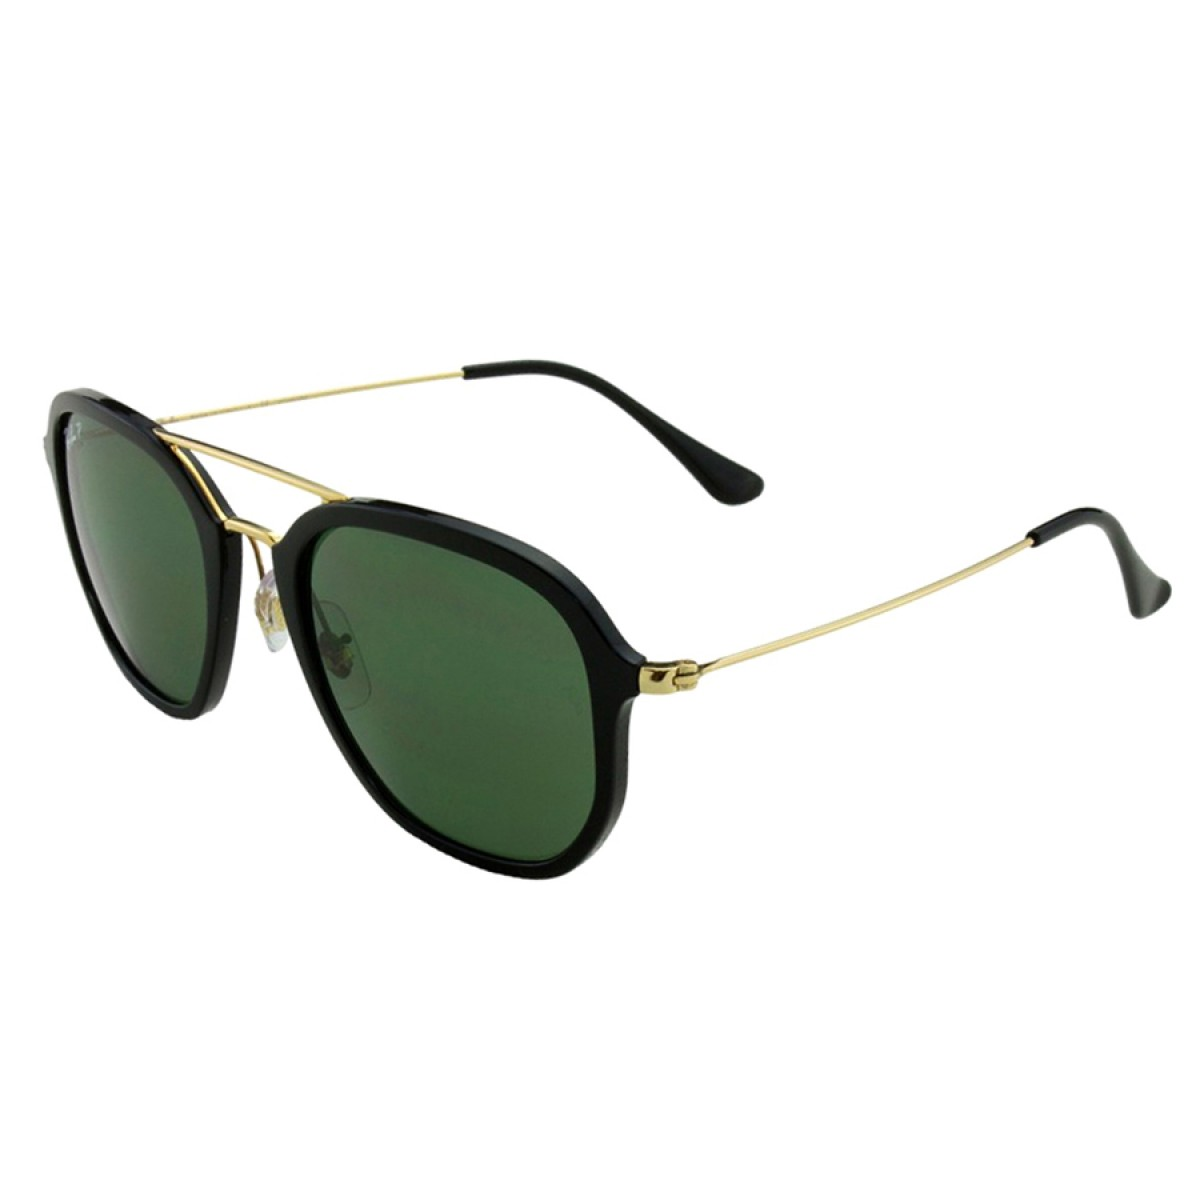 b1f5673e61 Ray Ban Highstreet Polarized Classic Green G-15 Square Unisex Sunglasses  RB4273-601 9A - Sunglasses - Fashion World